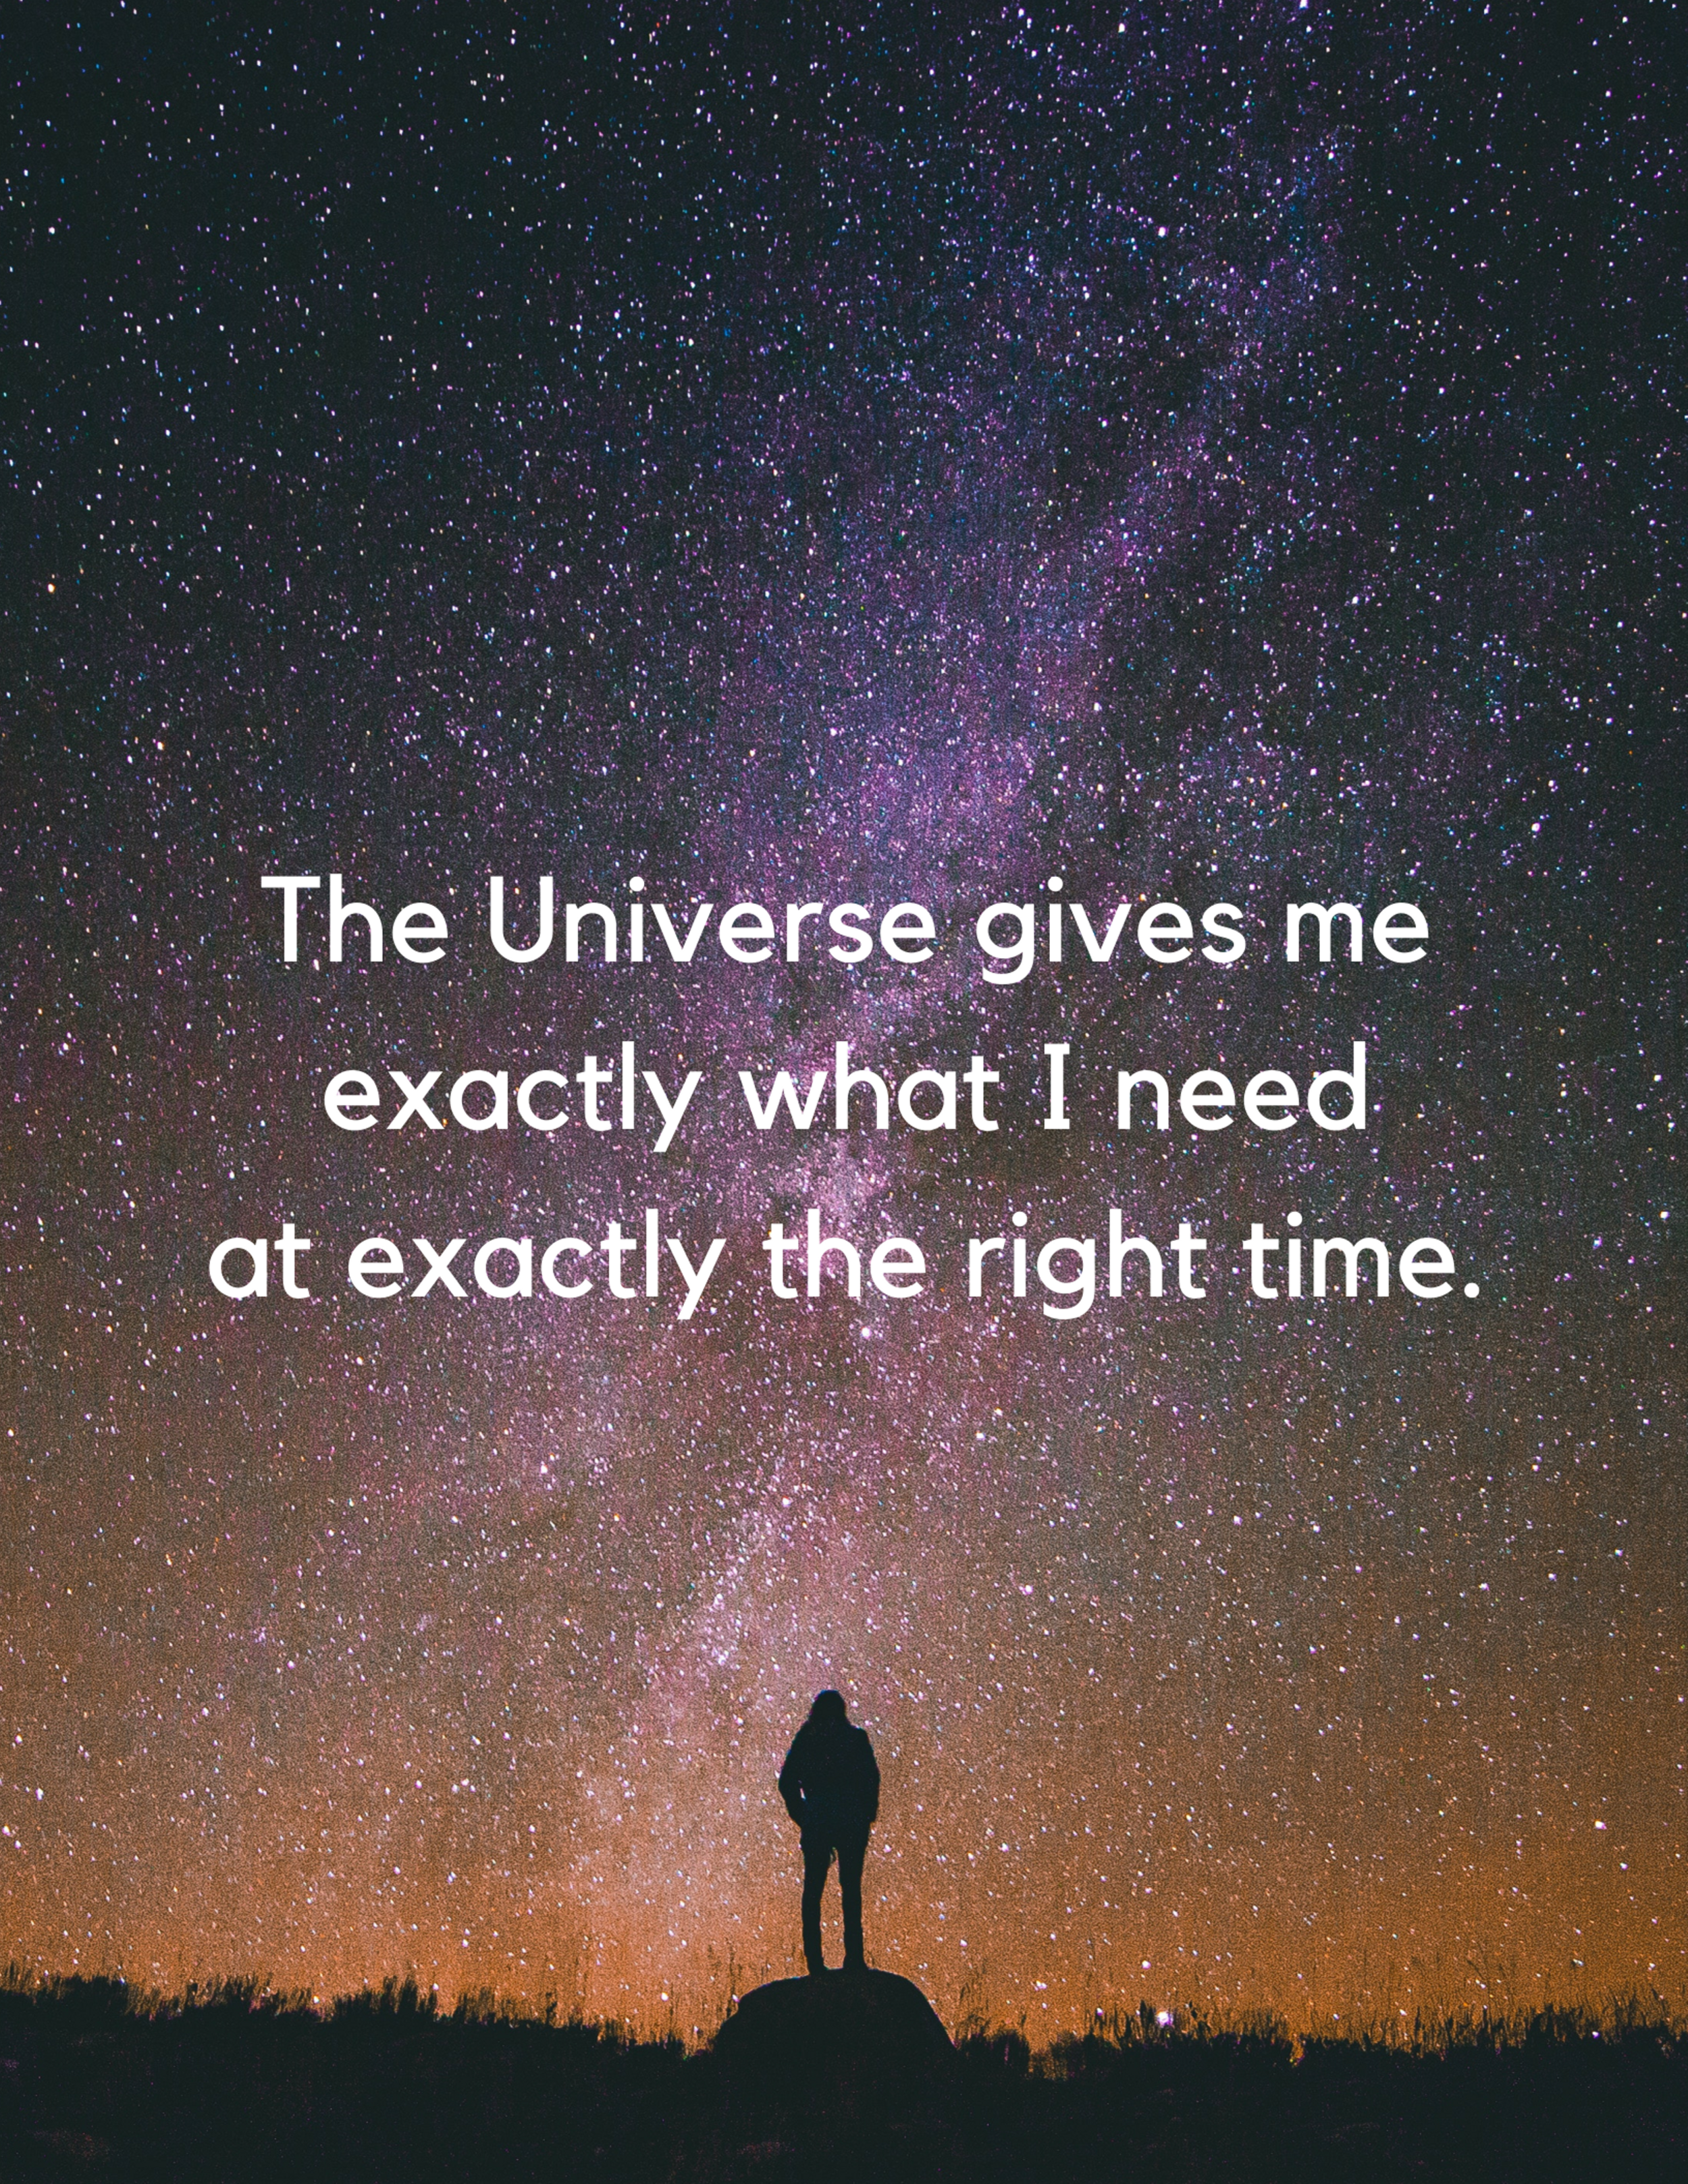 The Universe gives me exactly what I need at exactly the right time.png